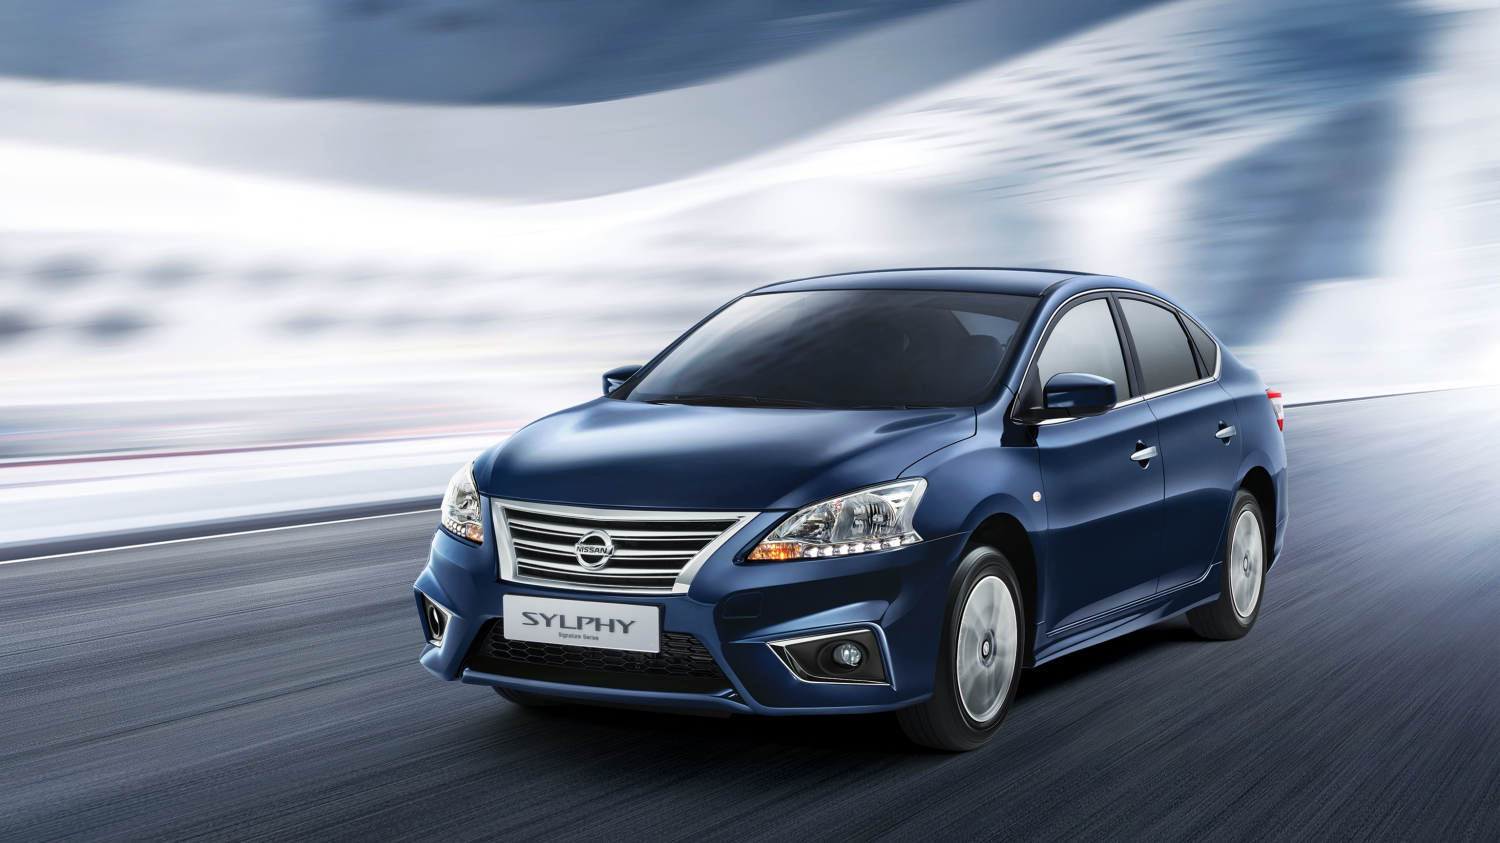 Nissan sylphy photo - 6